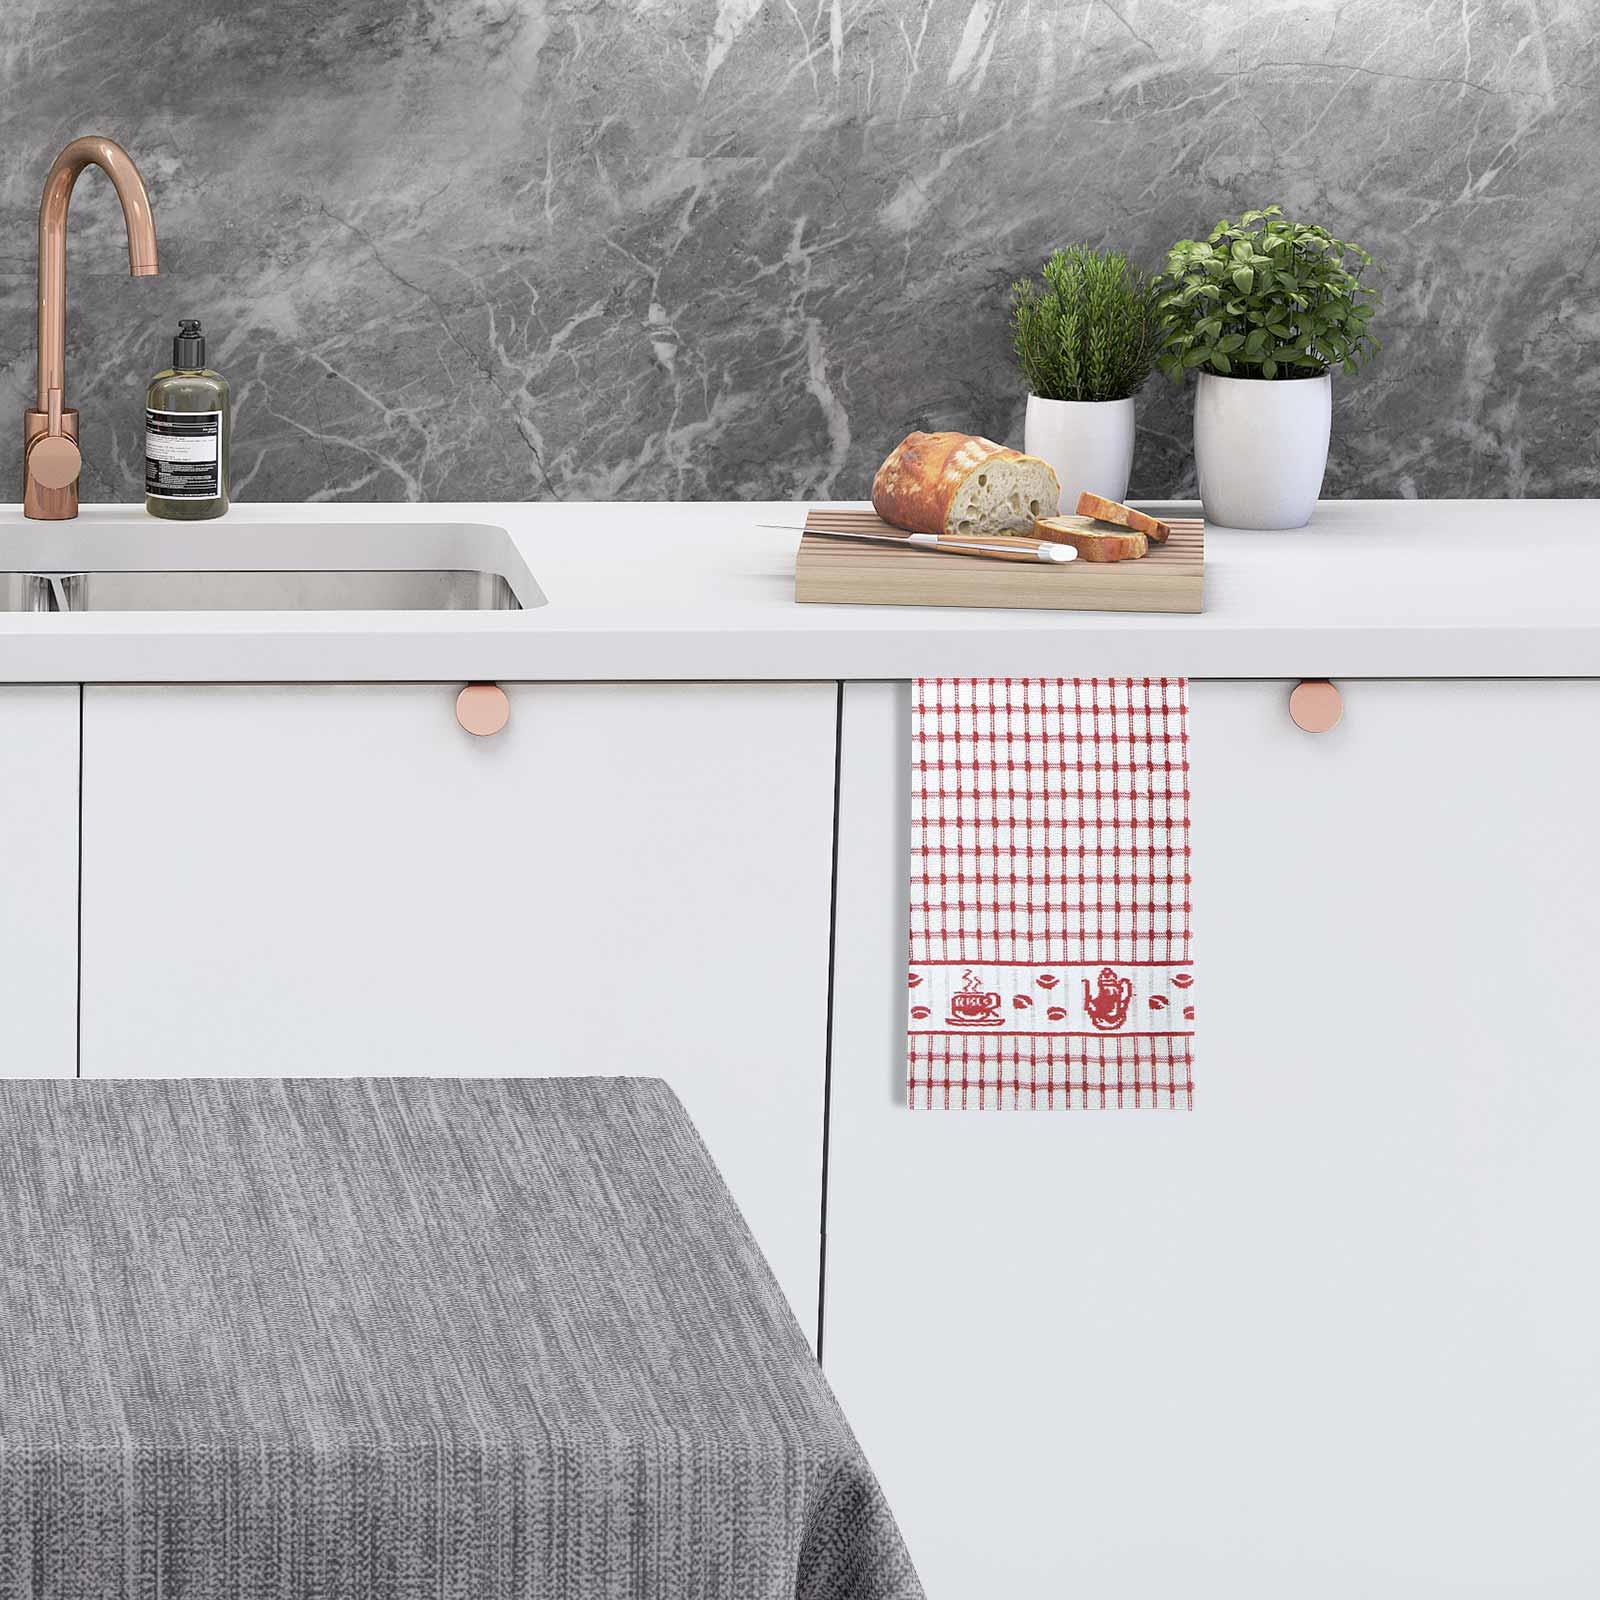 Packs-of-2-4-6-12-Tea-Towels-100-Cotton-Terry-Kitchen-Dish-Drying-Towel-Sets thumbnail 8